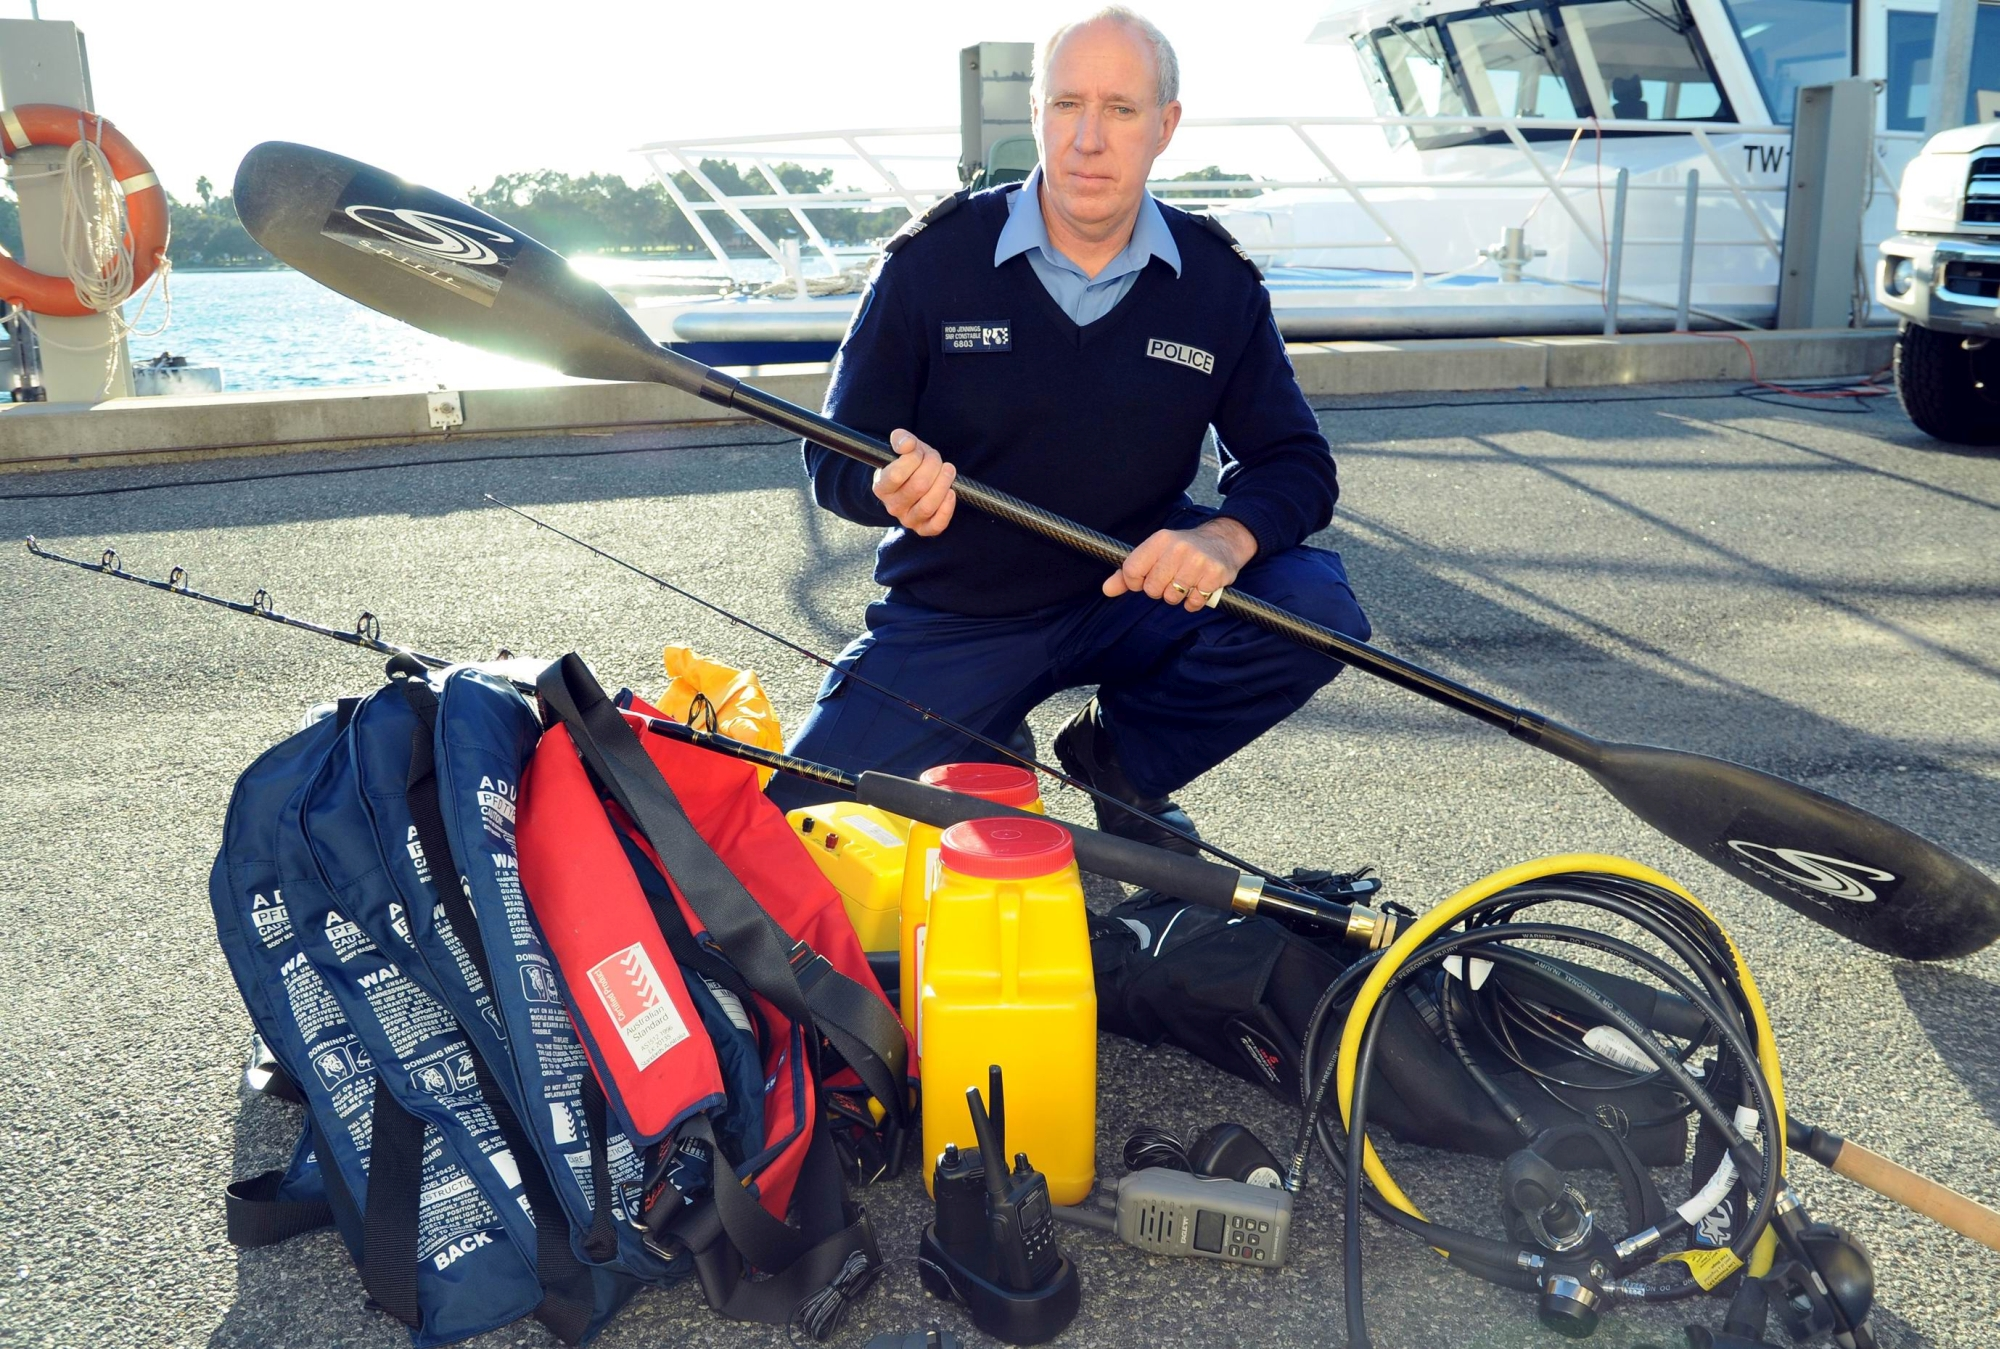 Snr Const Rob Jennings with some of the still to be claimed items.